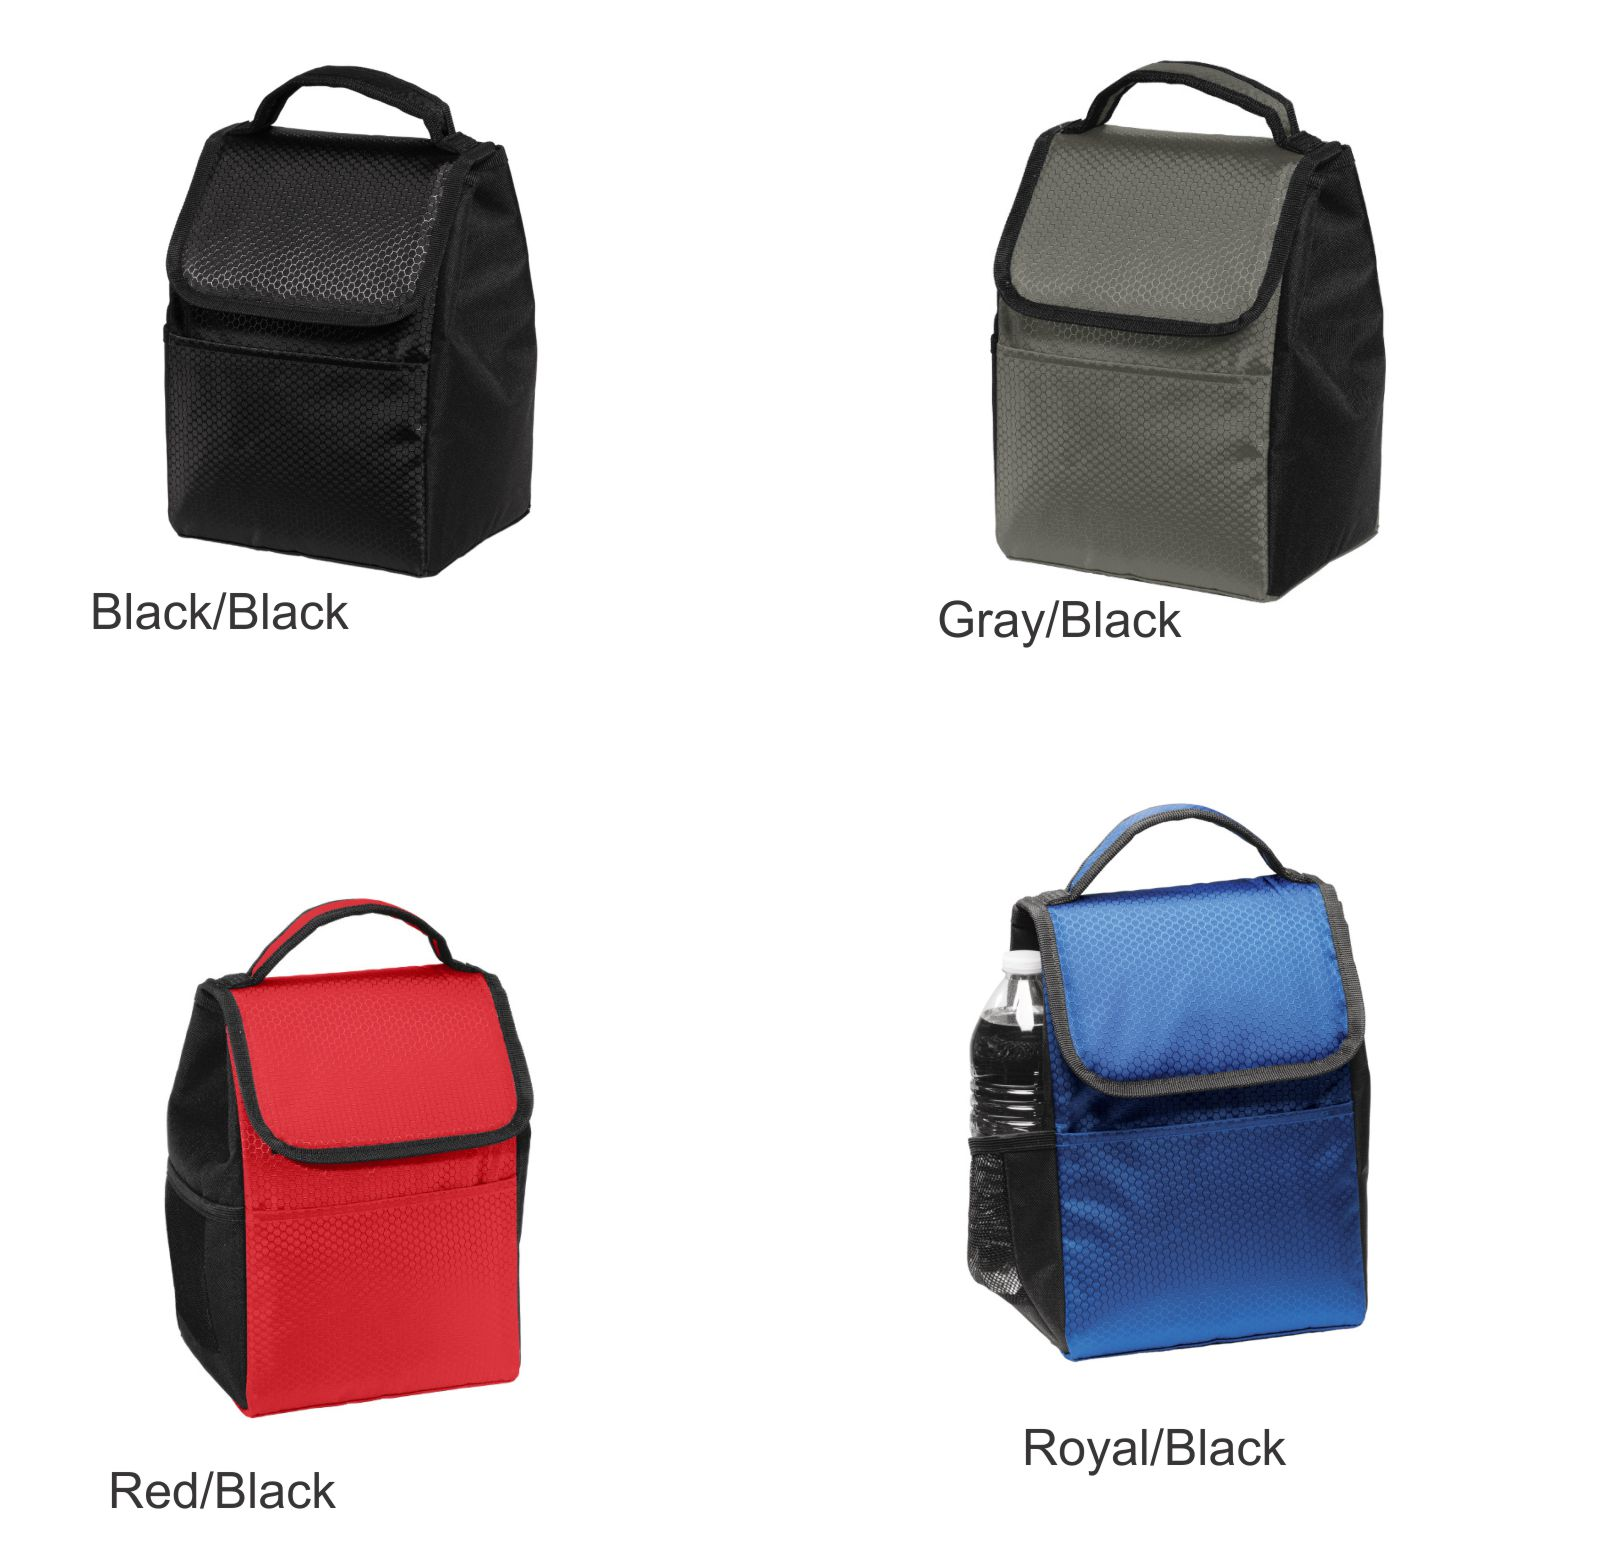 Lunch Bags Color Chart